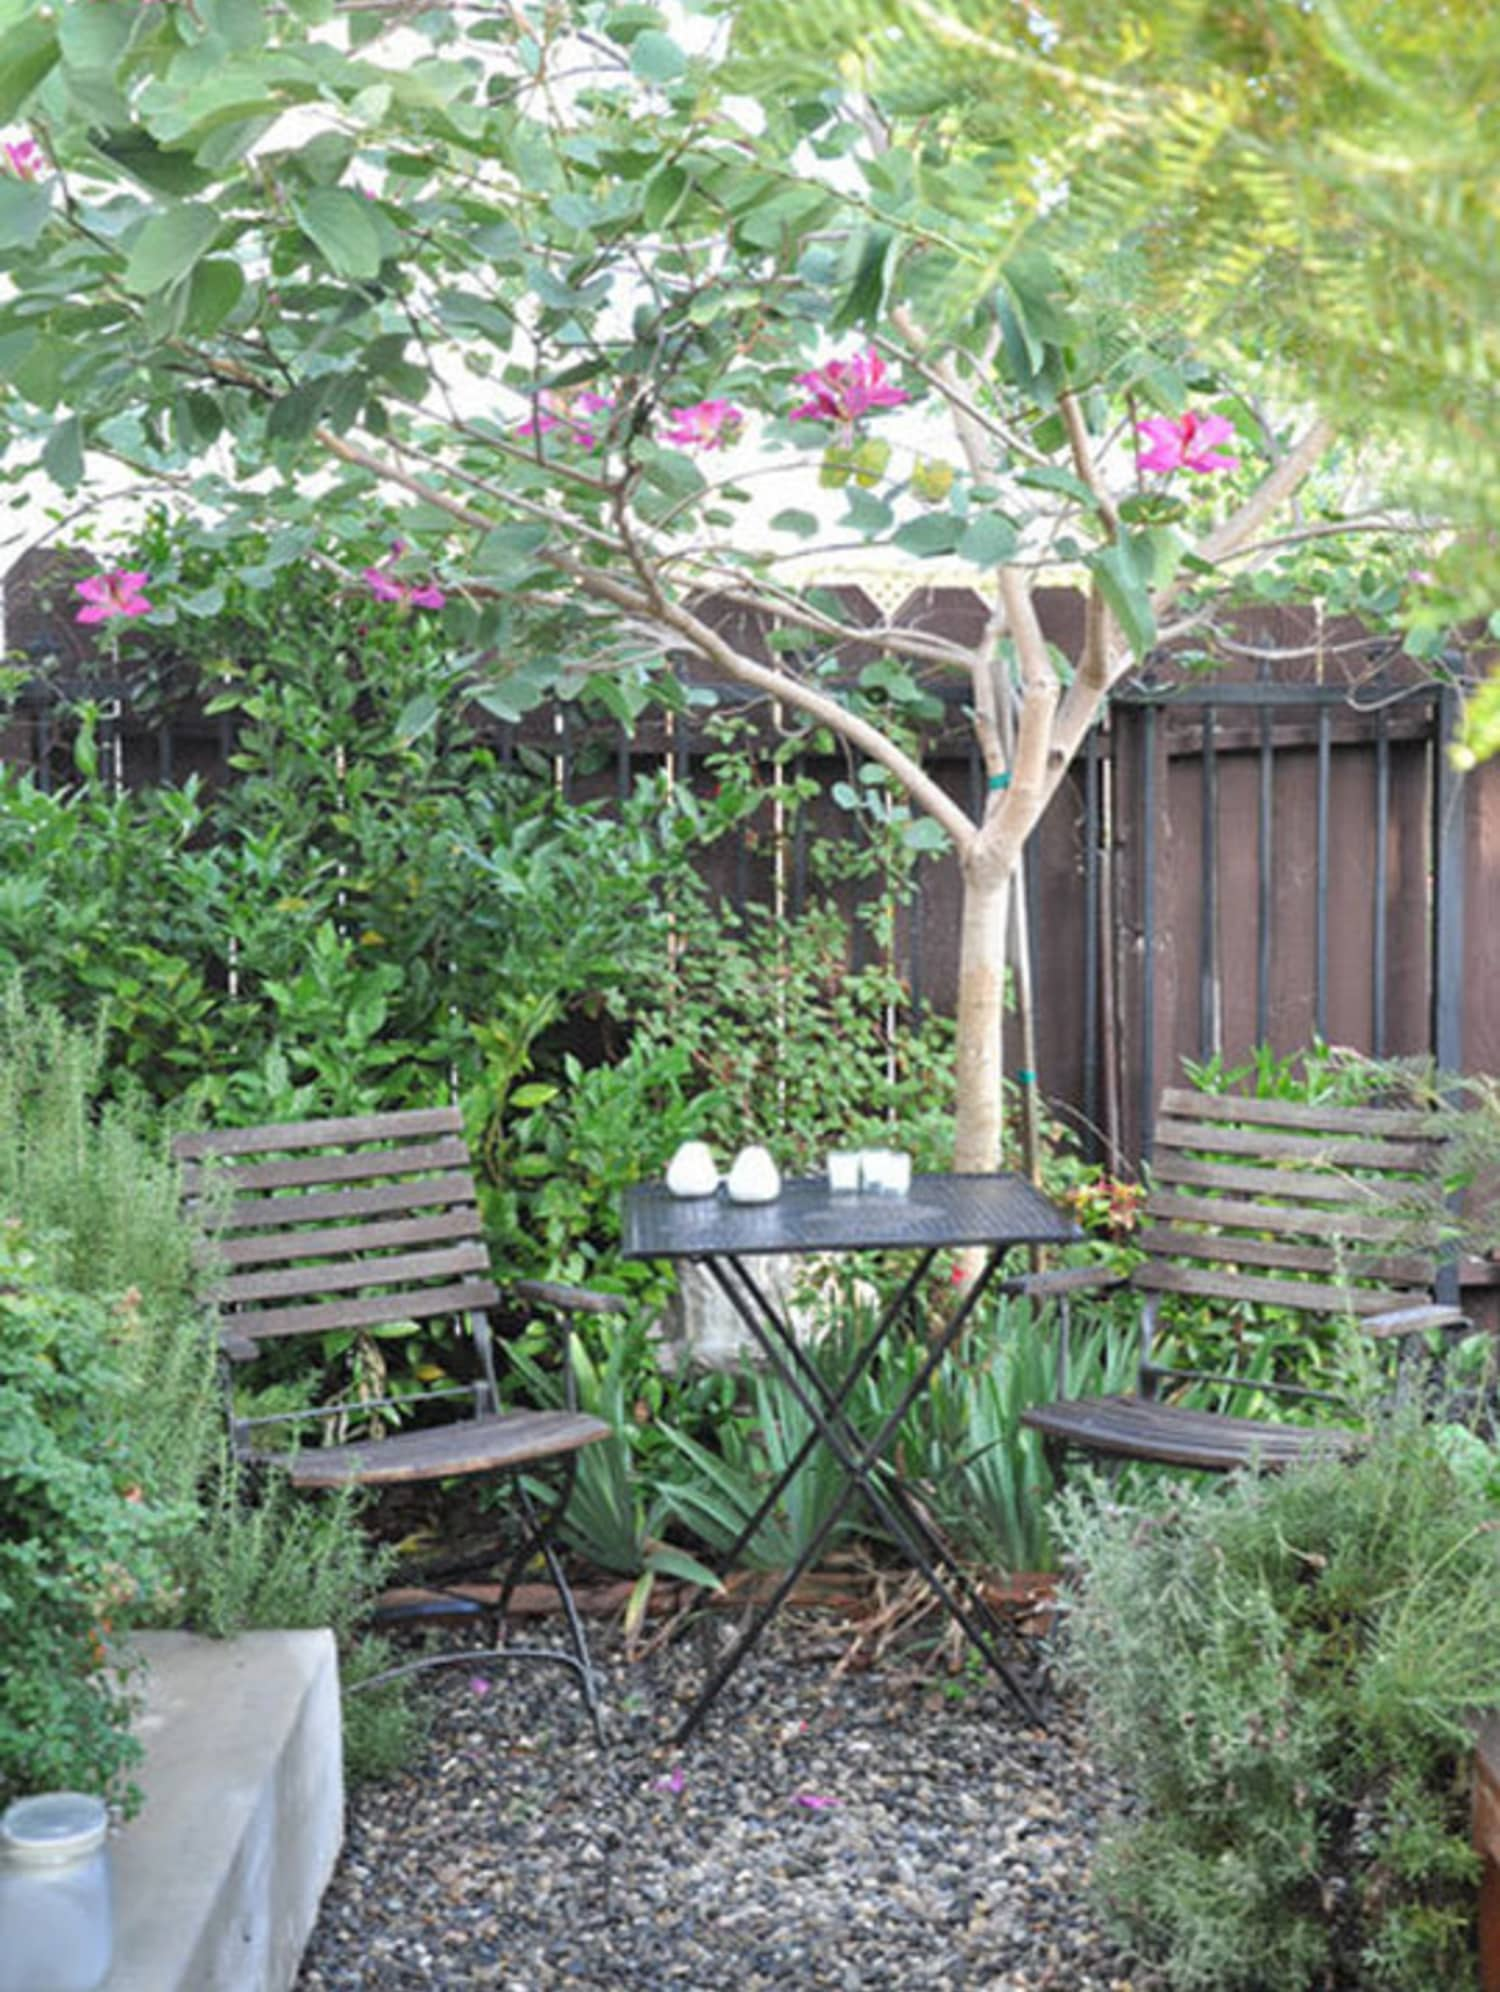 5 Ways to Bring More Texture to Your Garden—And Why It's Good to Do So